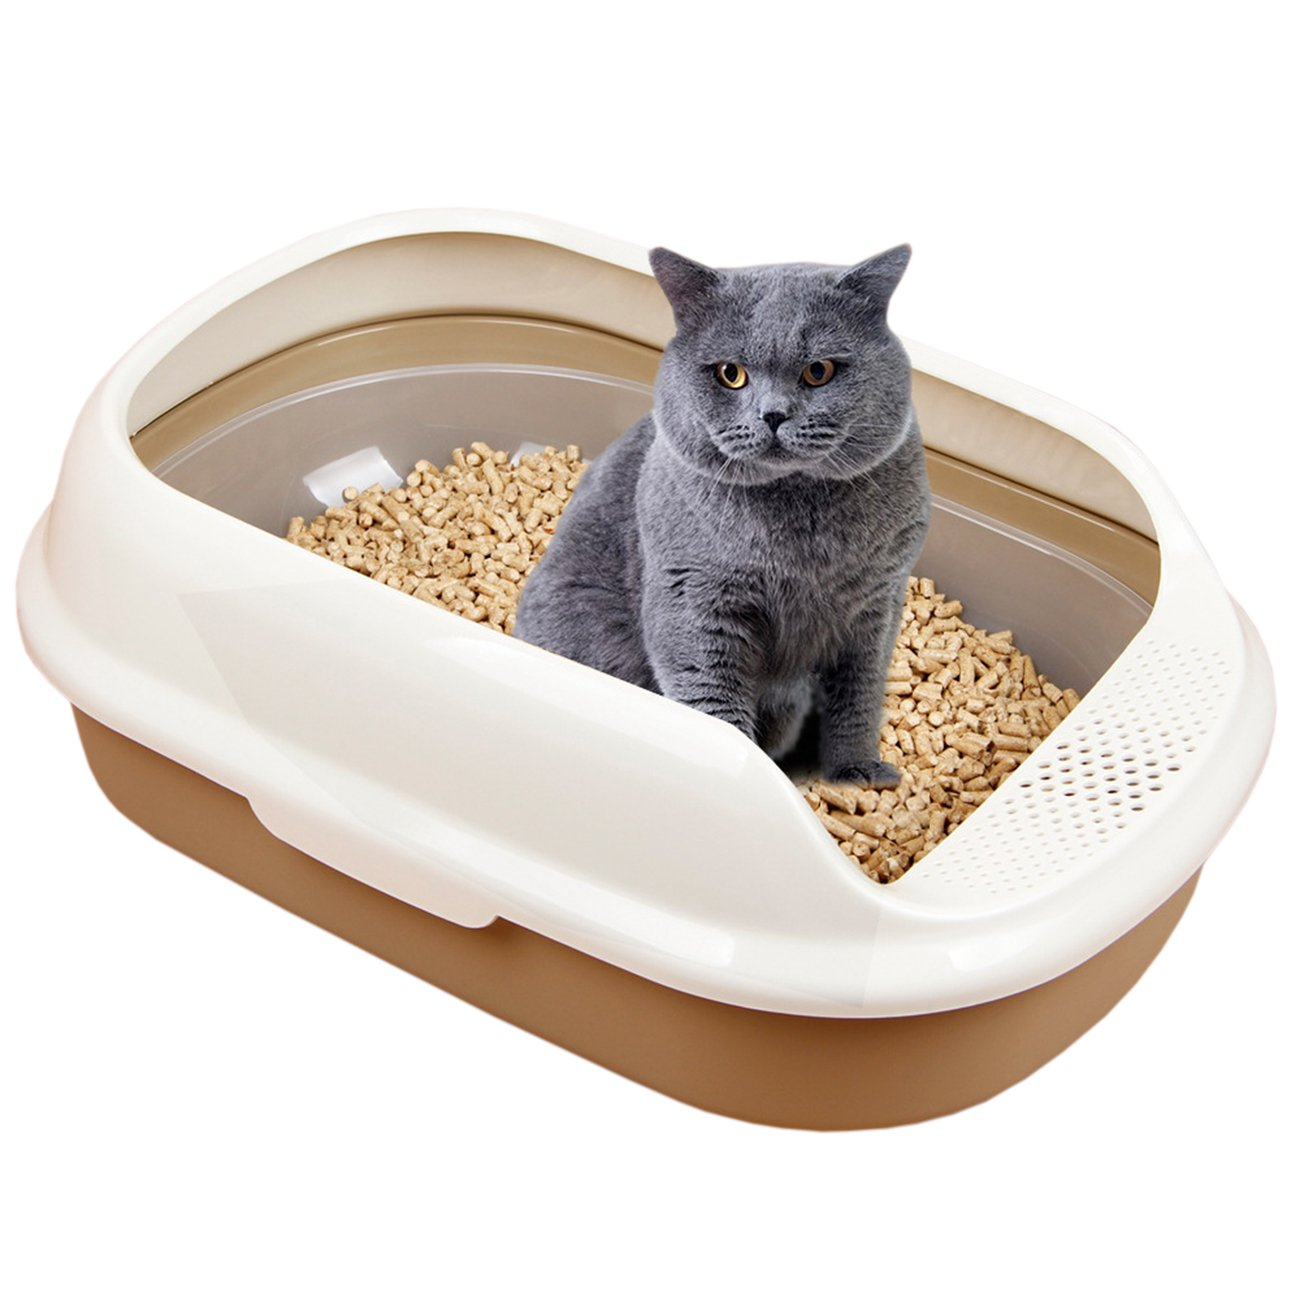 UHeng Sifting Tray Cat Semi Closed Litter Box Anti Splash Toilet